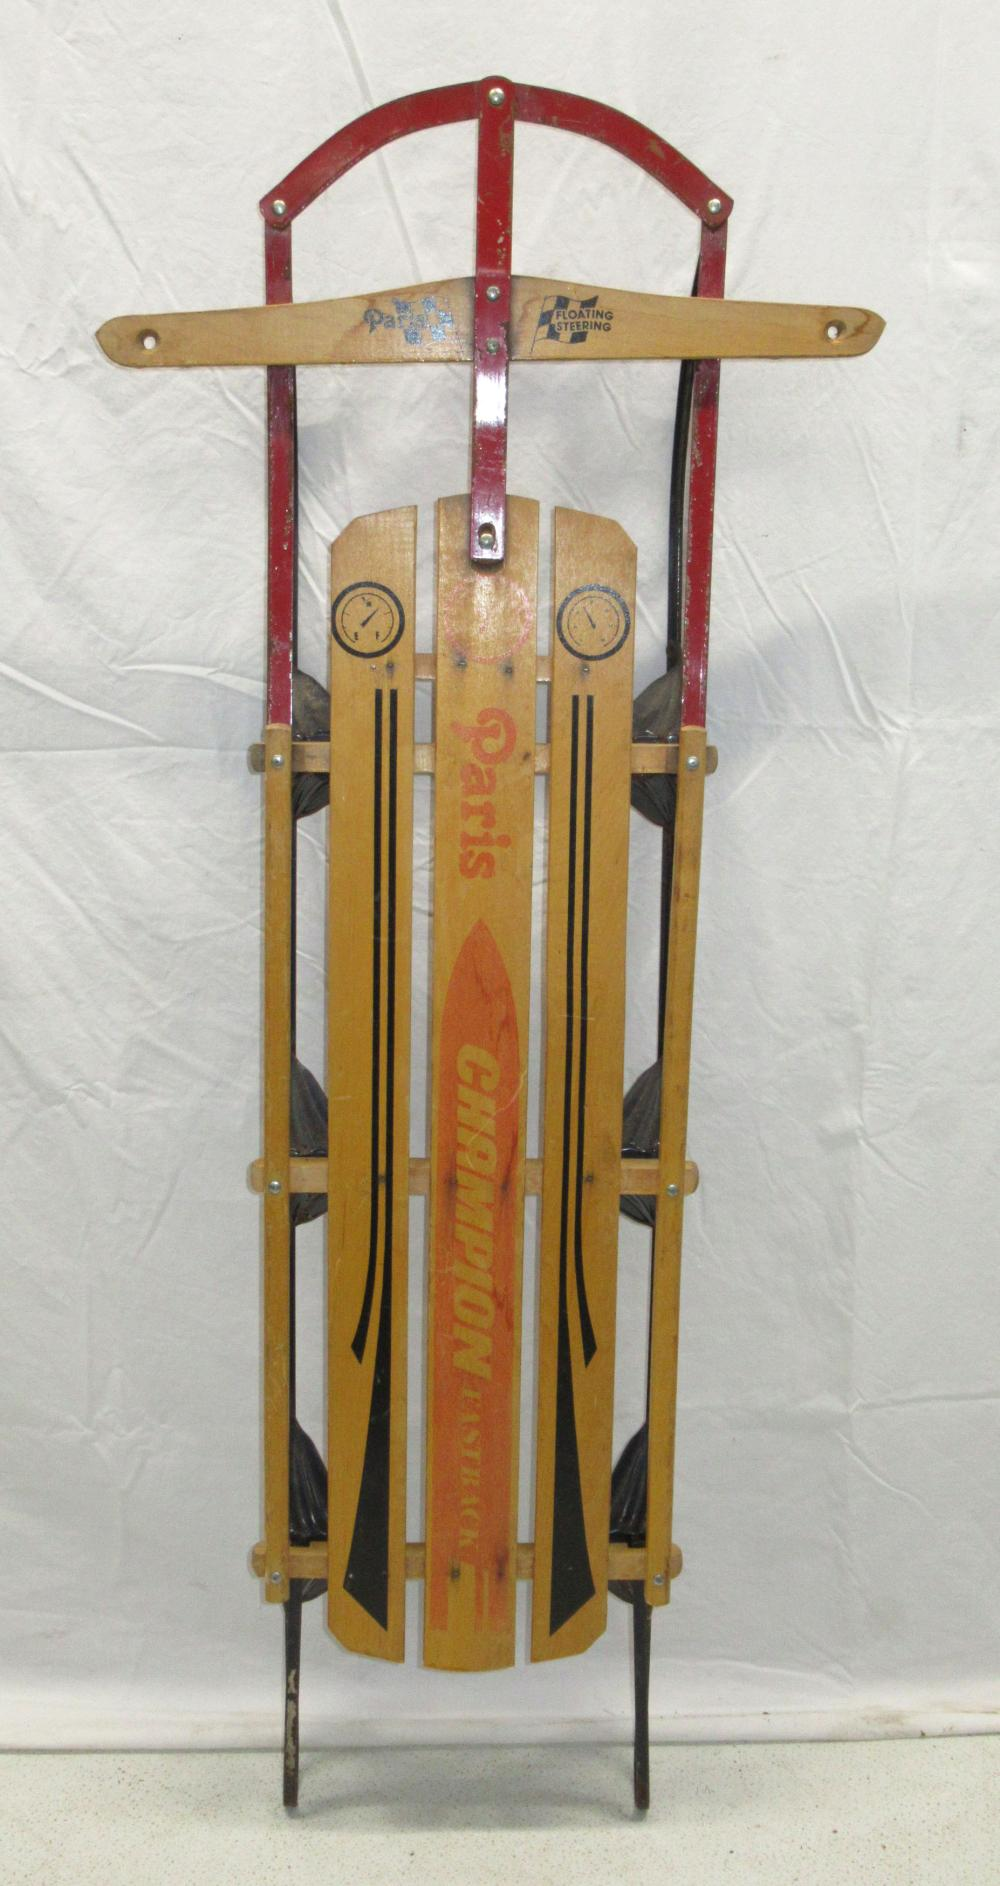 Paris Champion Sled